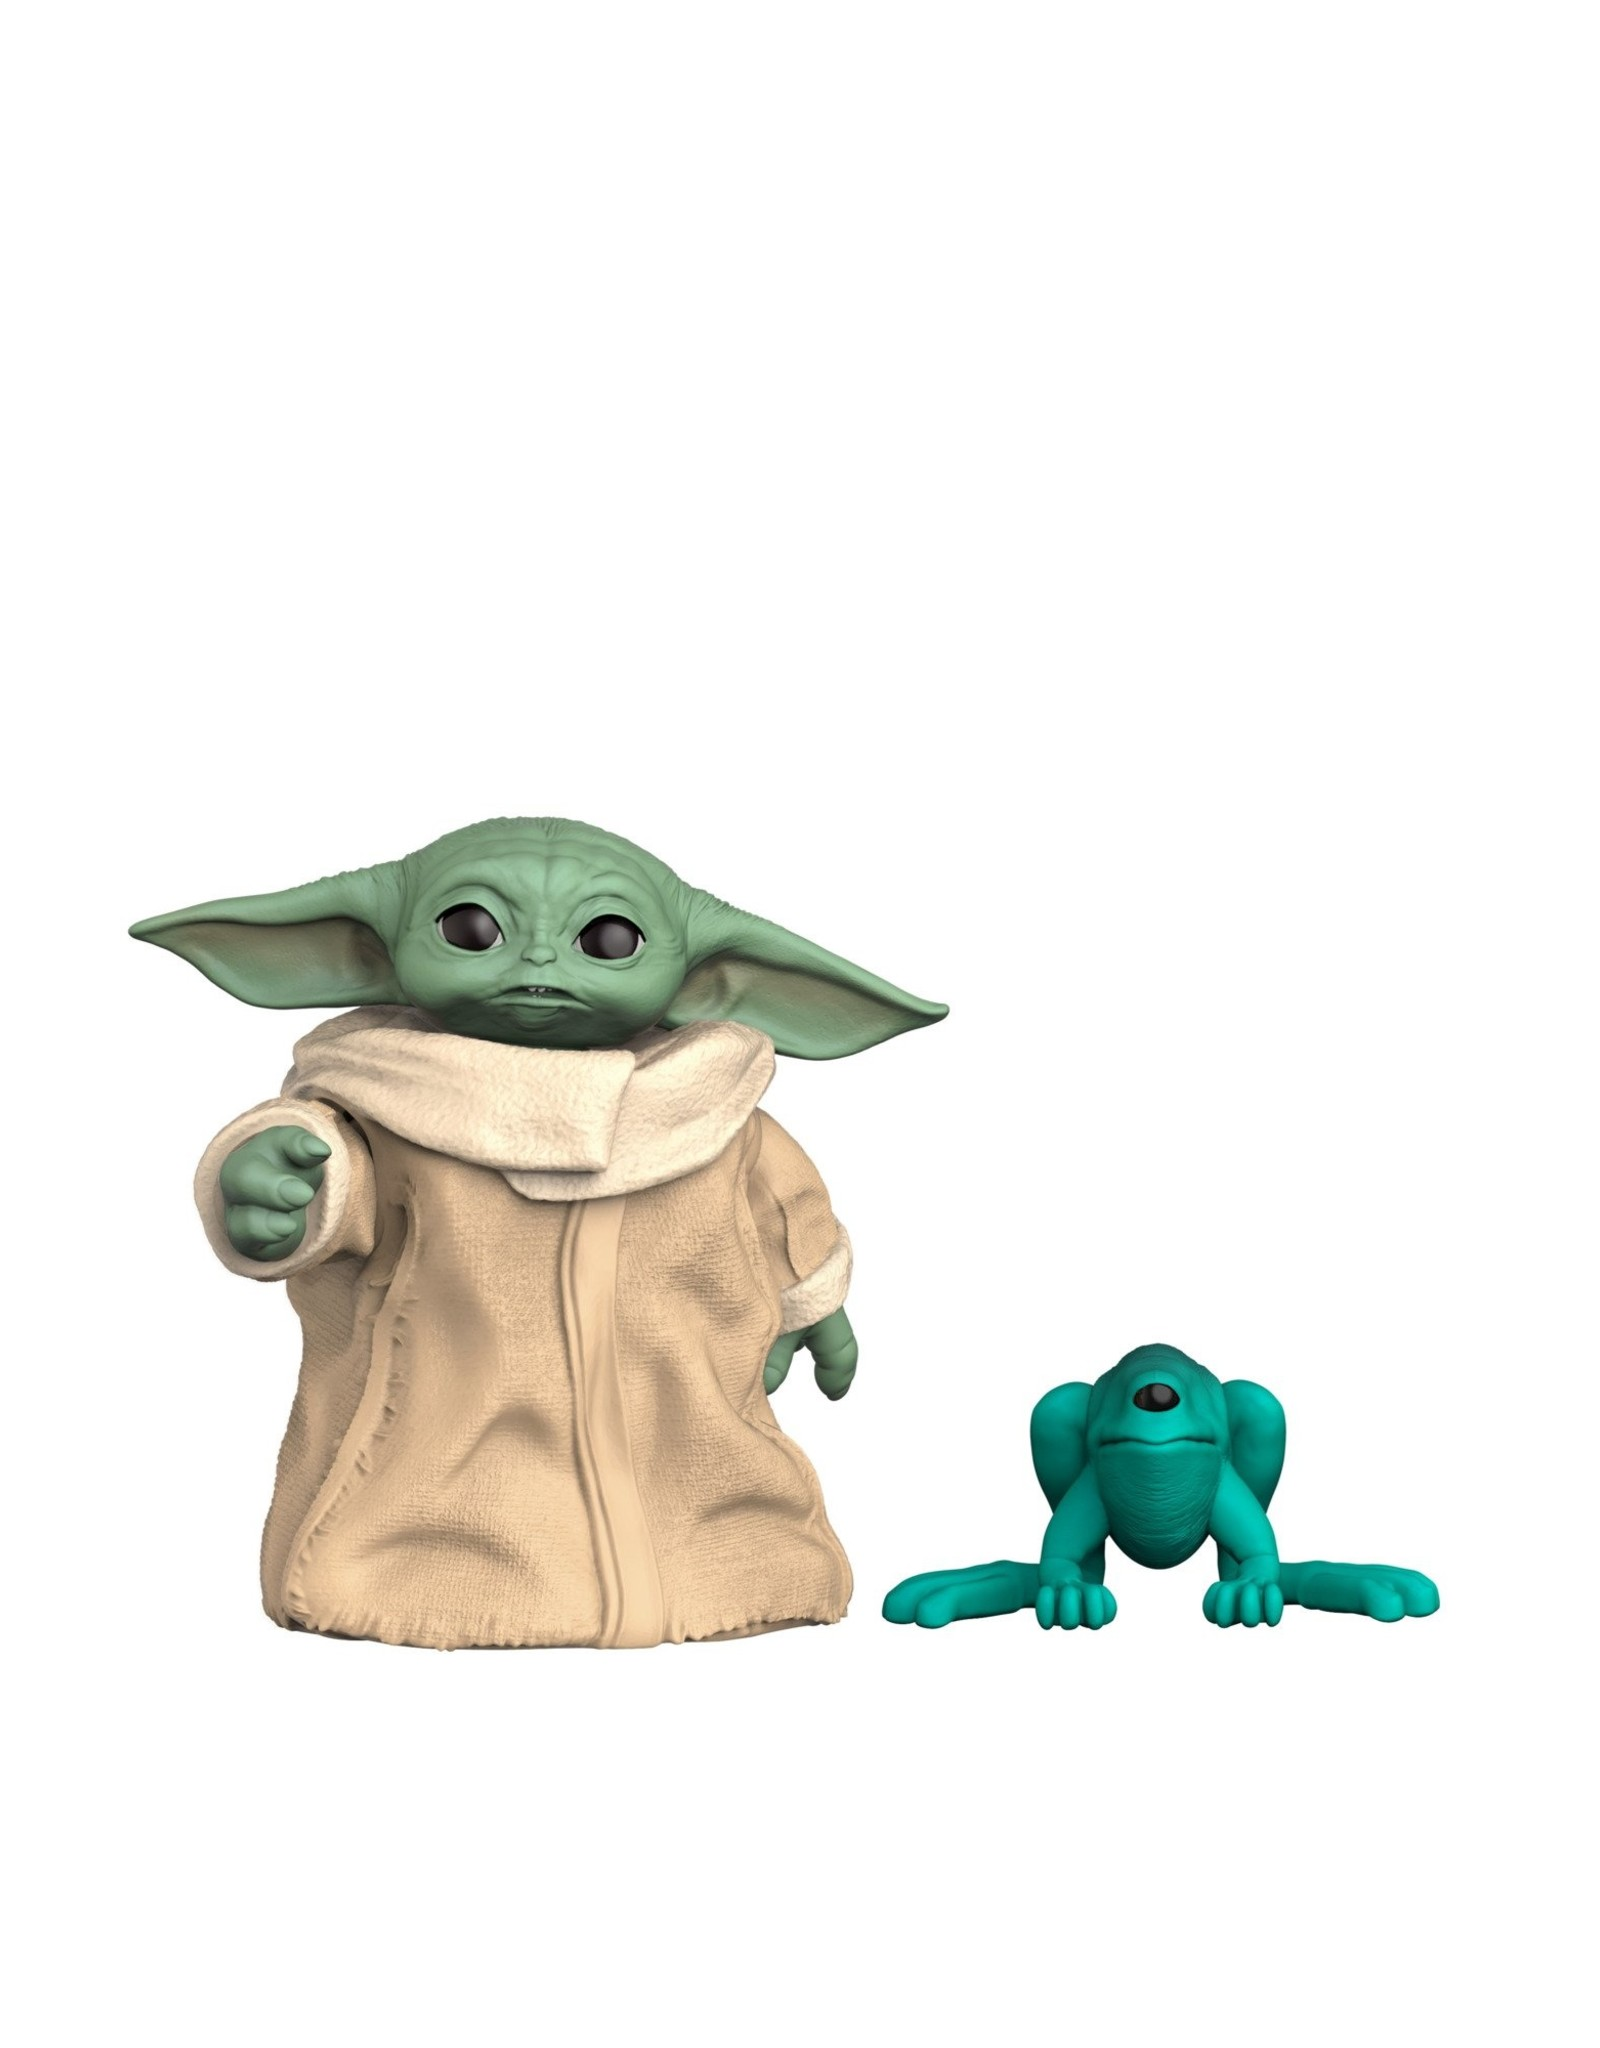 HASBRO Star Wars - The Vintage Collection: Grogu (The Child) with Pram (2021)